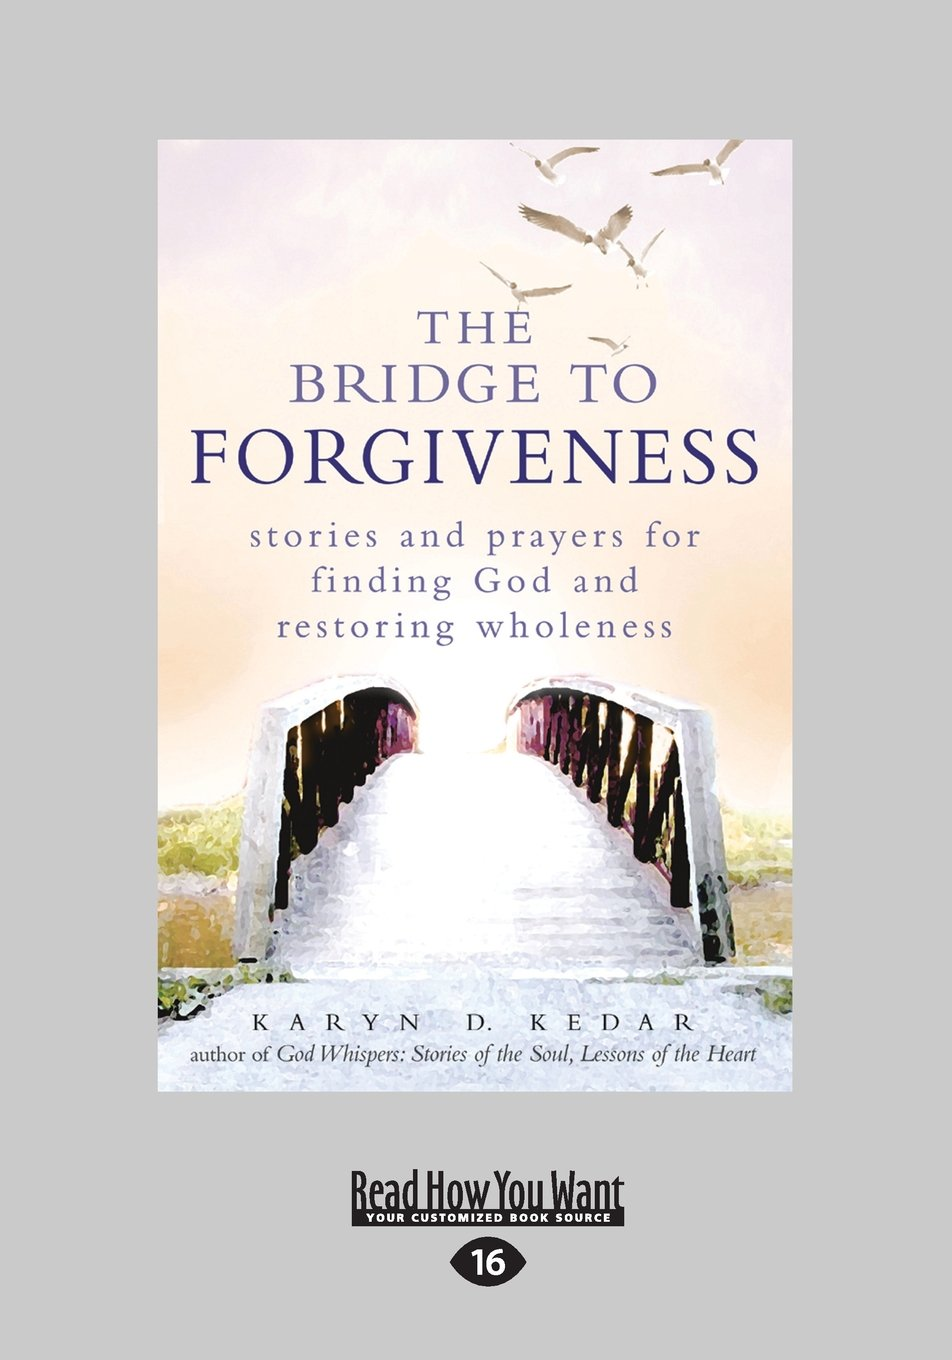 The Bridge to Forgiveness: Stories and Prayers for Finding God and Restoring Wholeness ebook